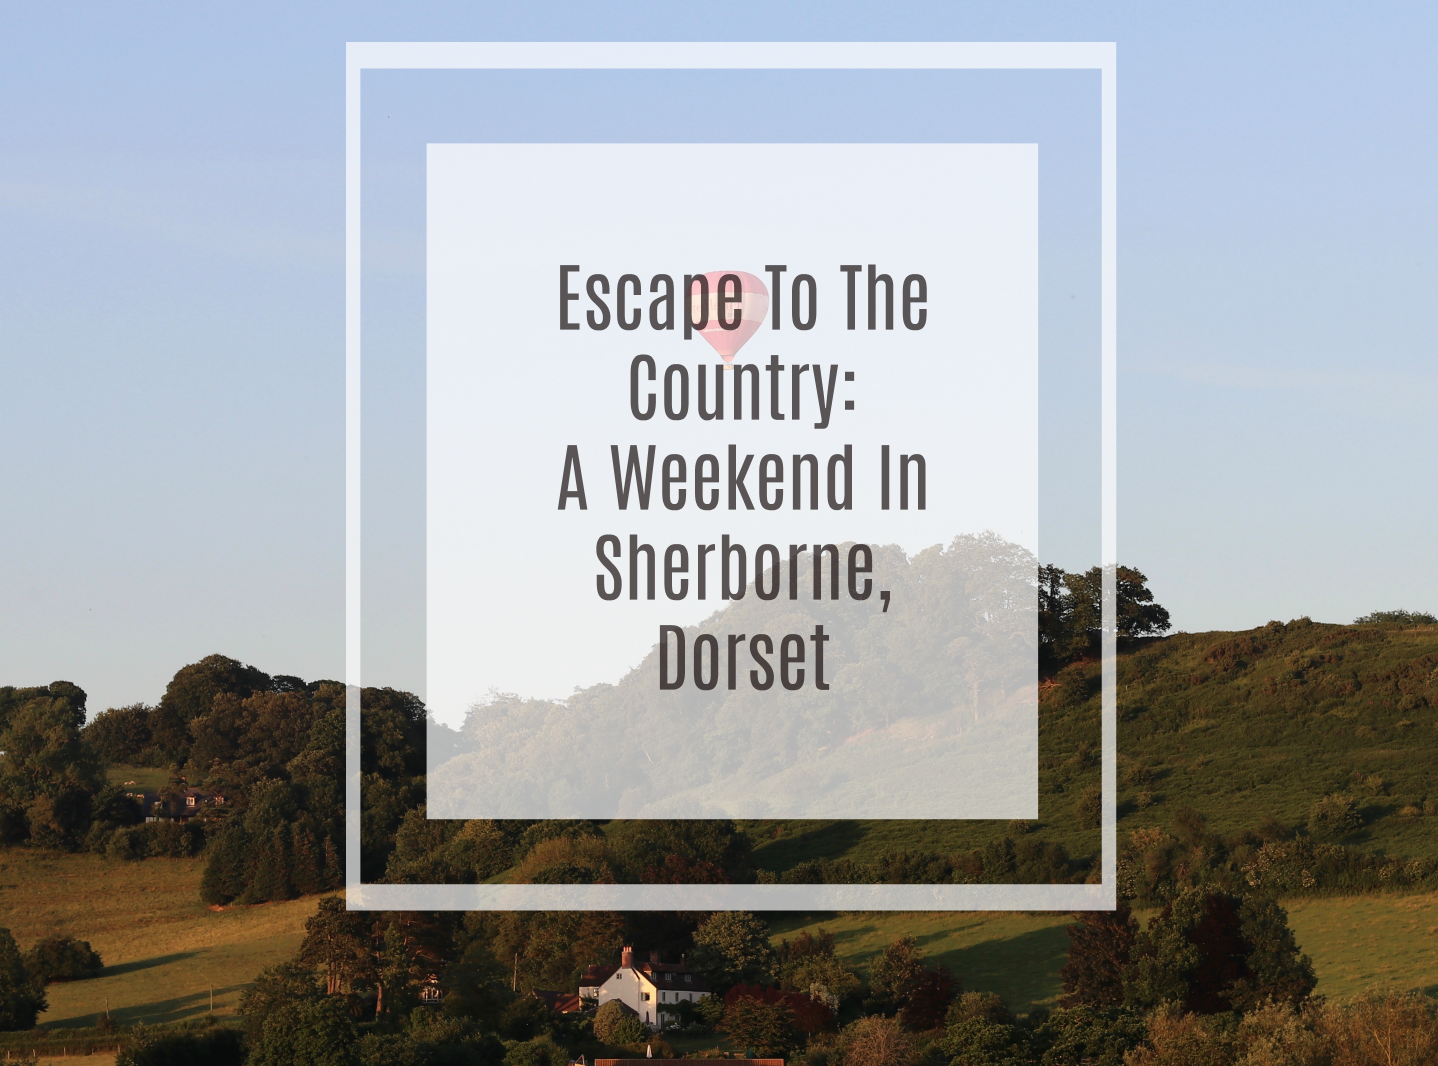 Escape to the country - A weekend in Sherborne Dorset